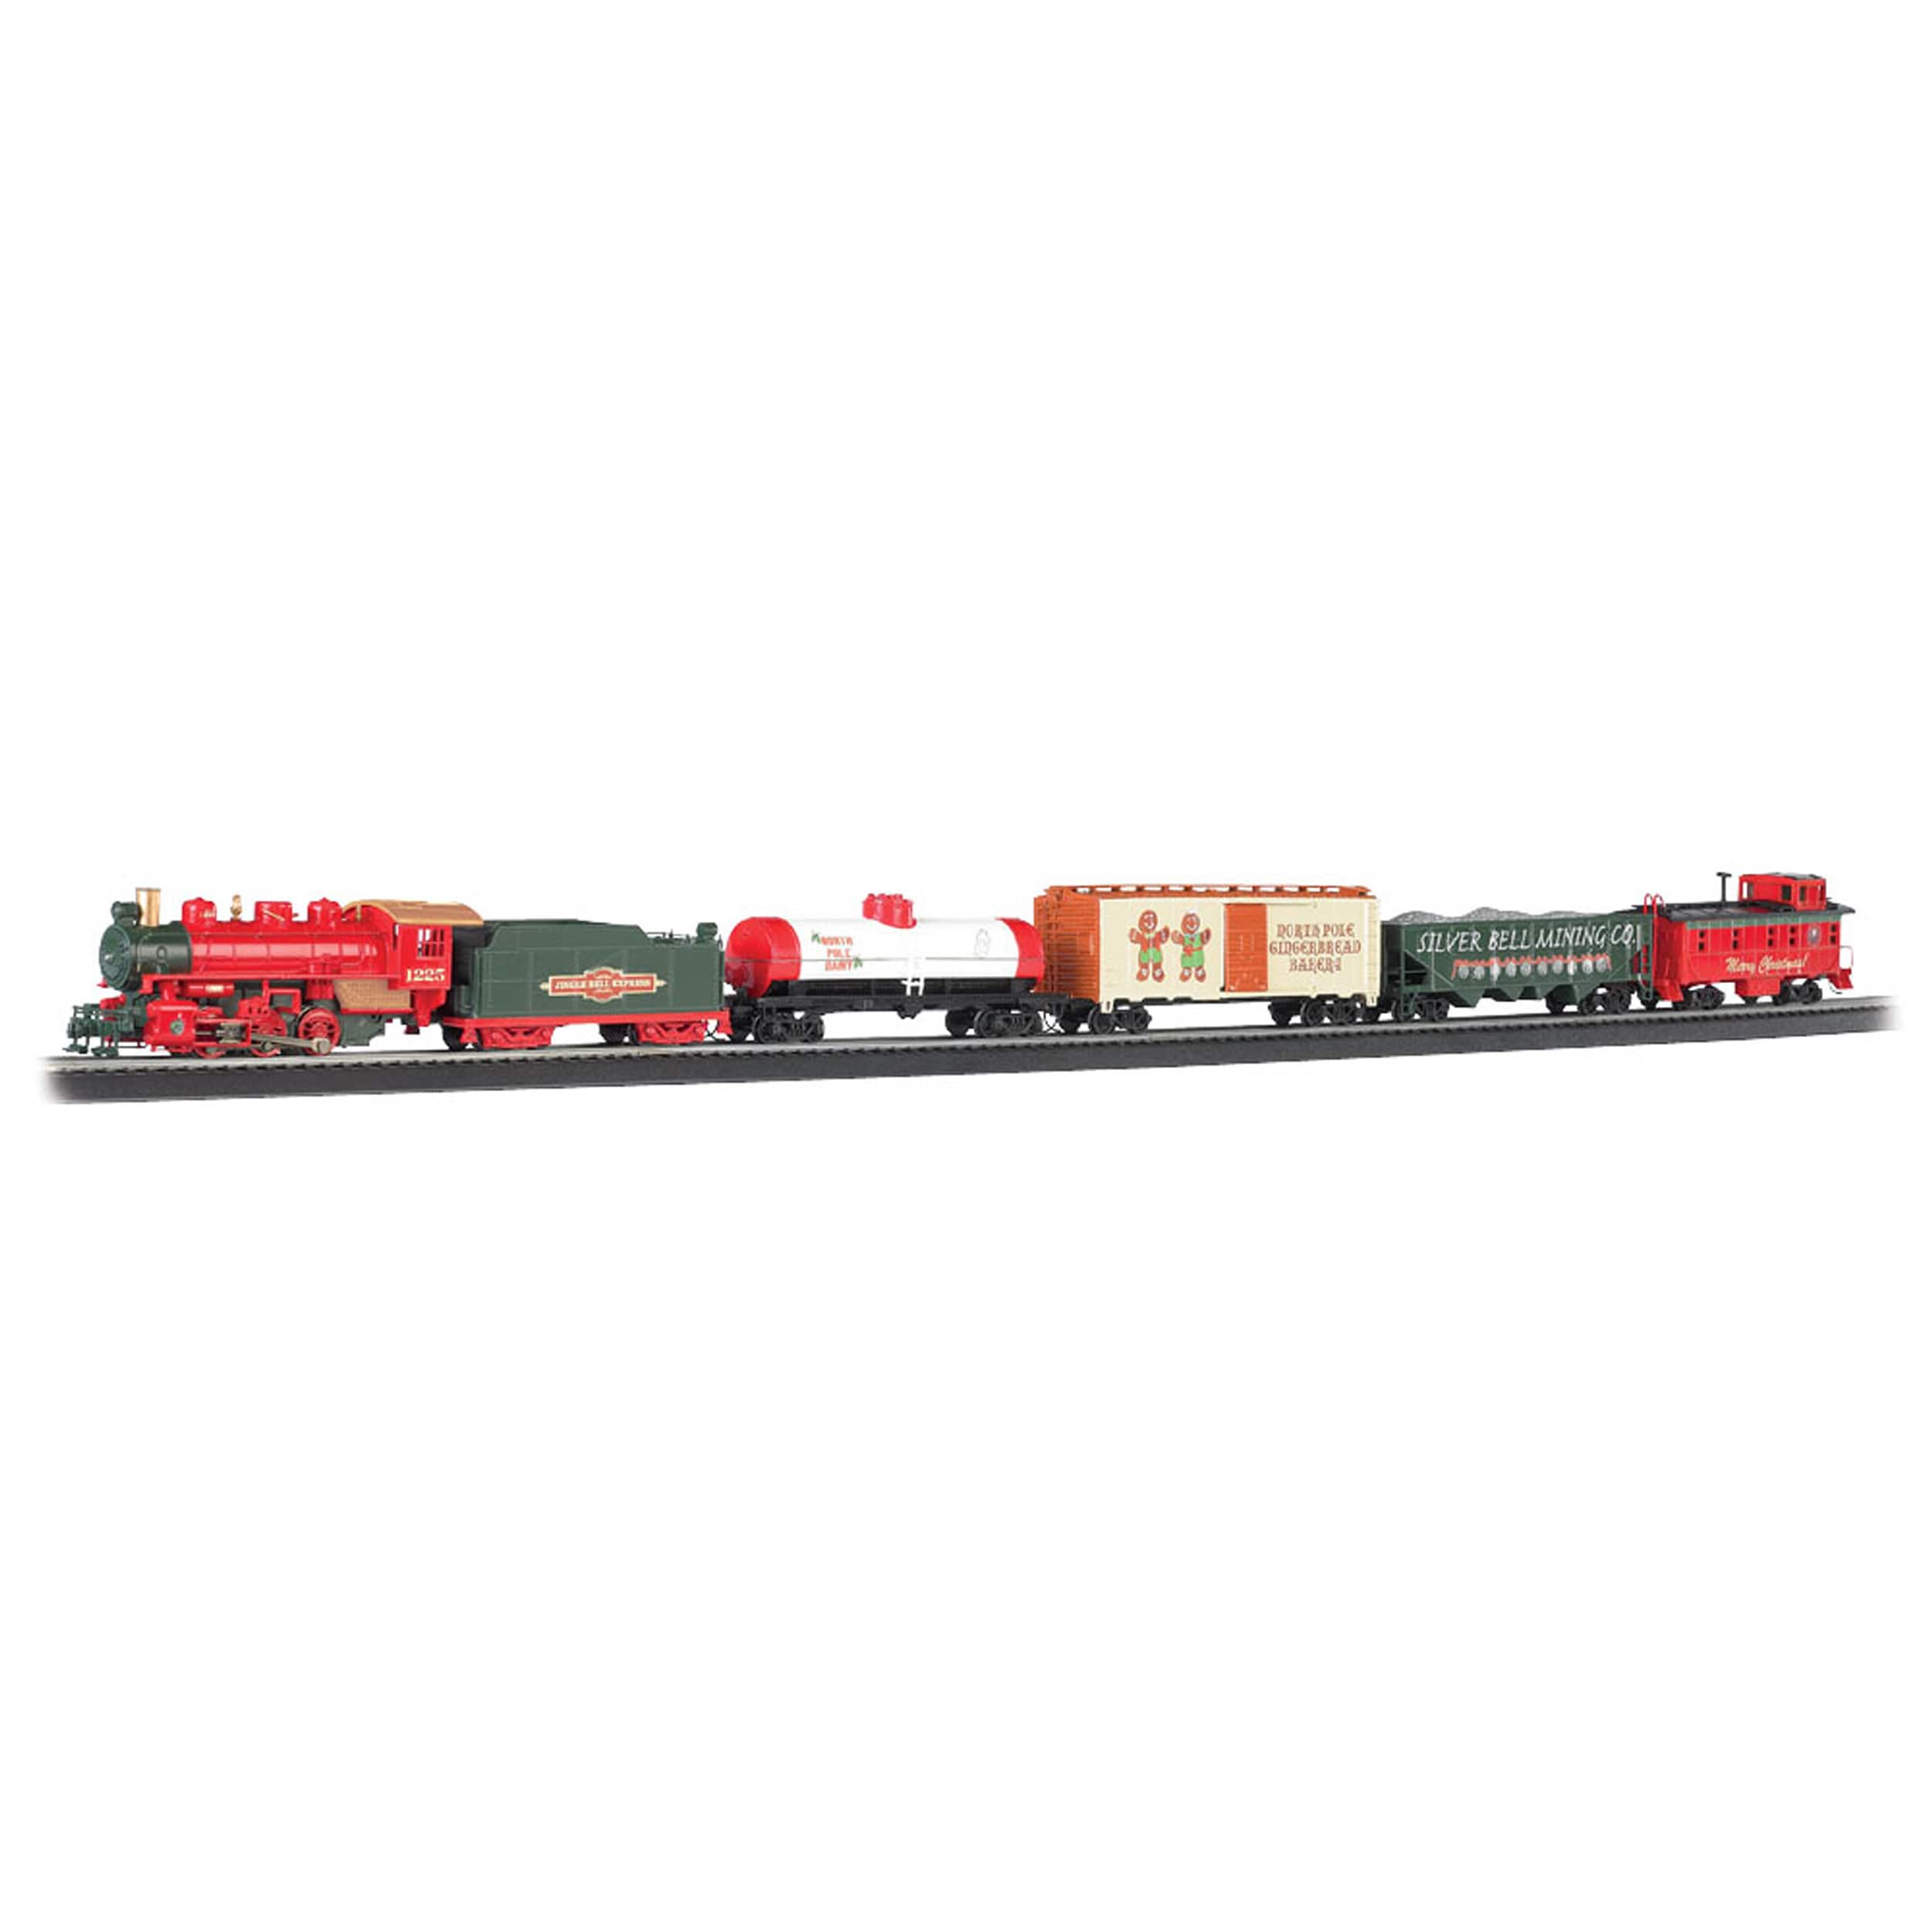 Bachmann Jingle Bell Express HO Scale Ready To Run Electr...